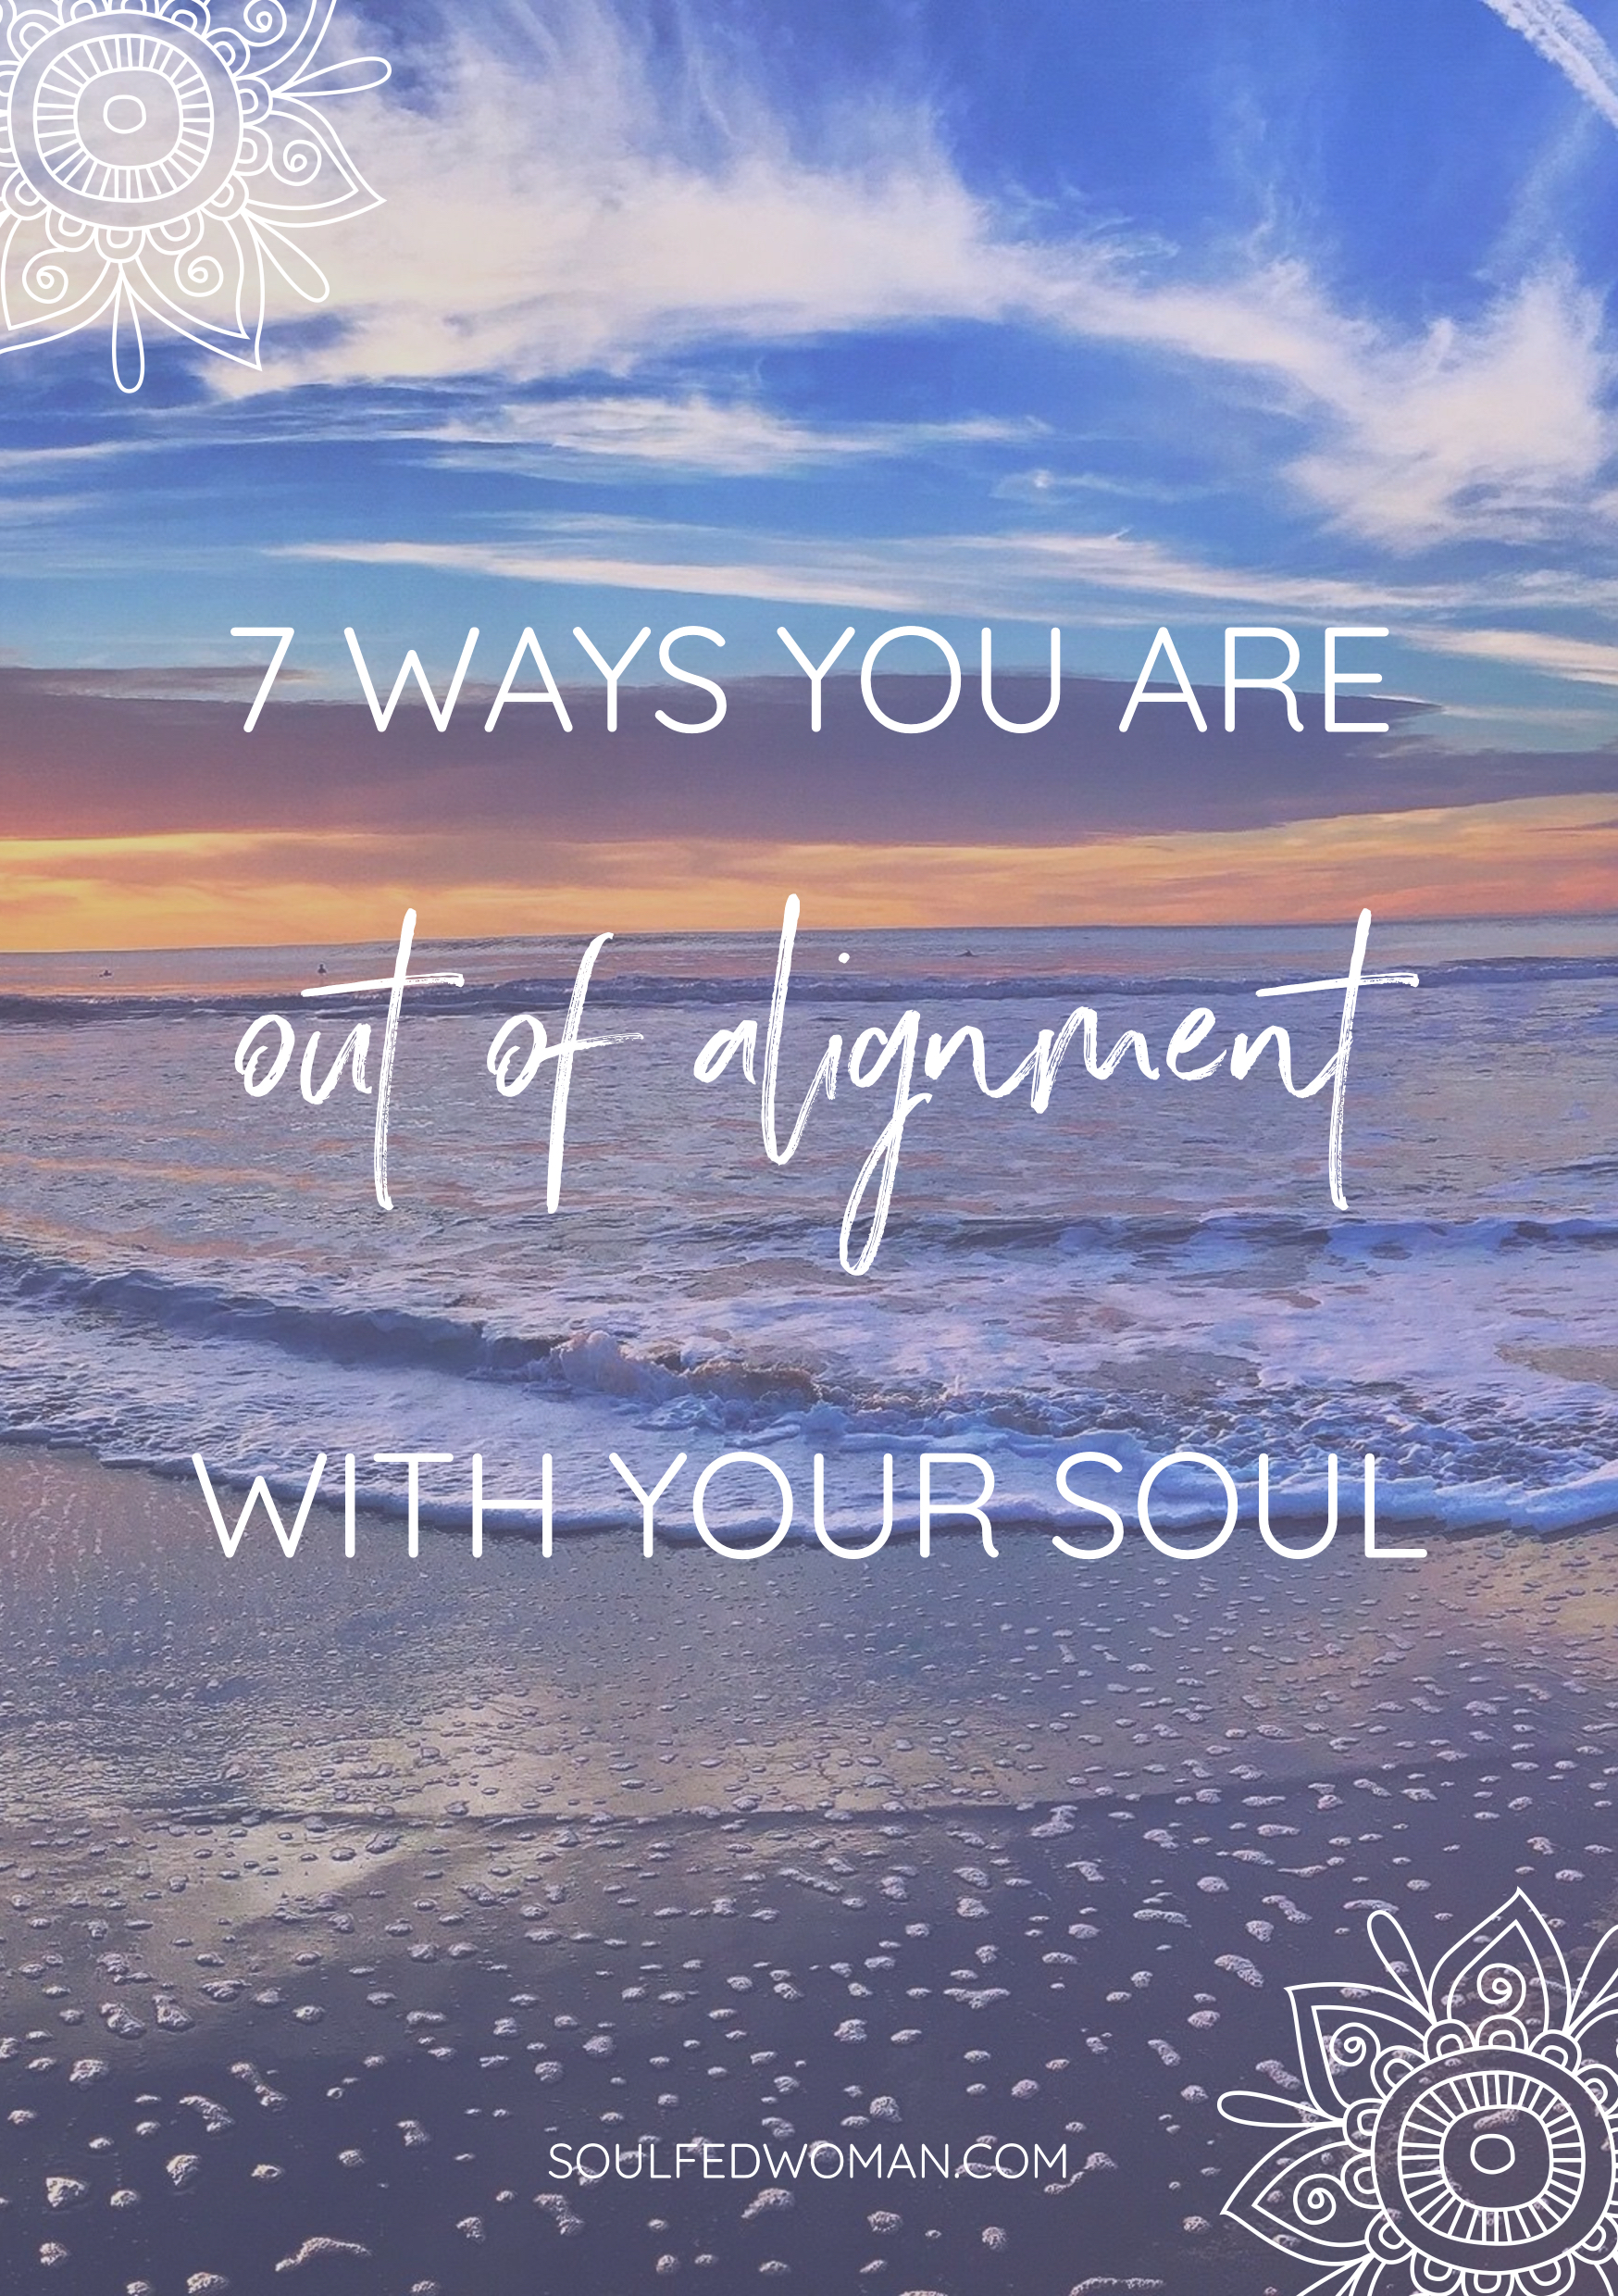 7 ways you are out of alignment with your soul. Ever felt like something is off but you can't quite put your finger on what? Feeling exhausted and fed up despite your successes? Alignment is key